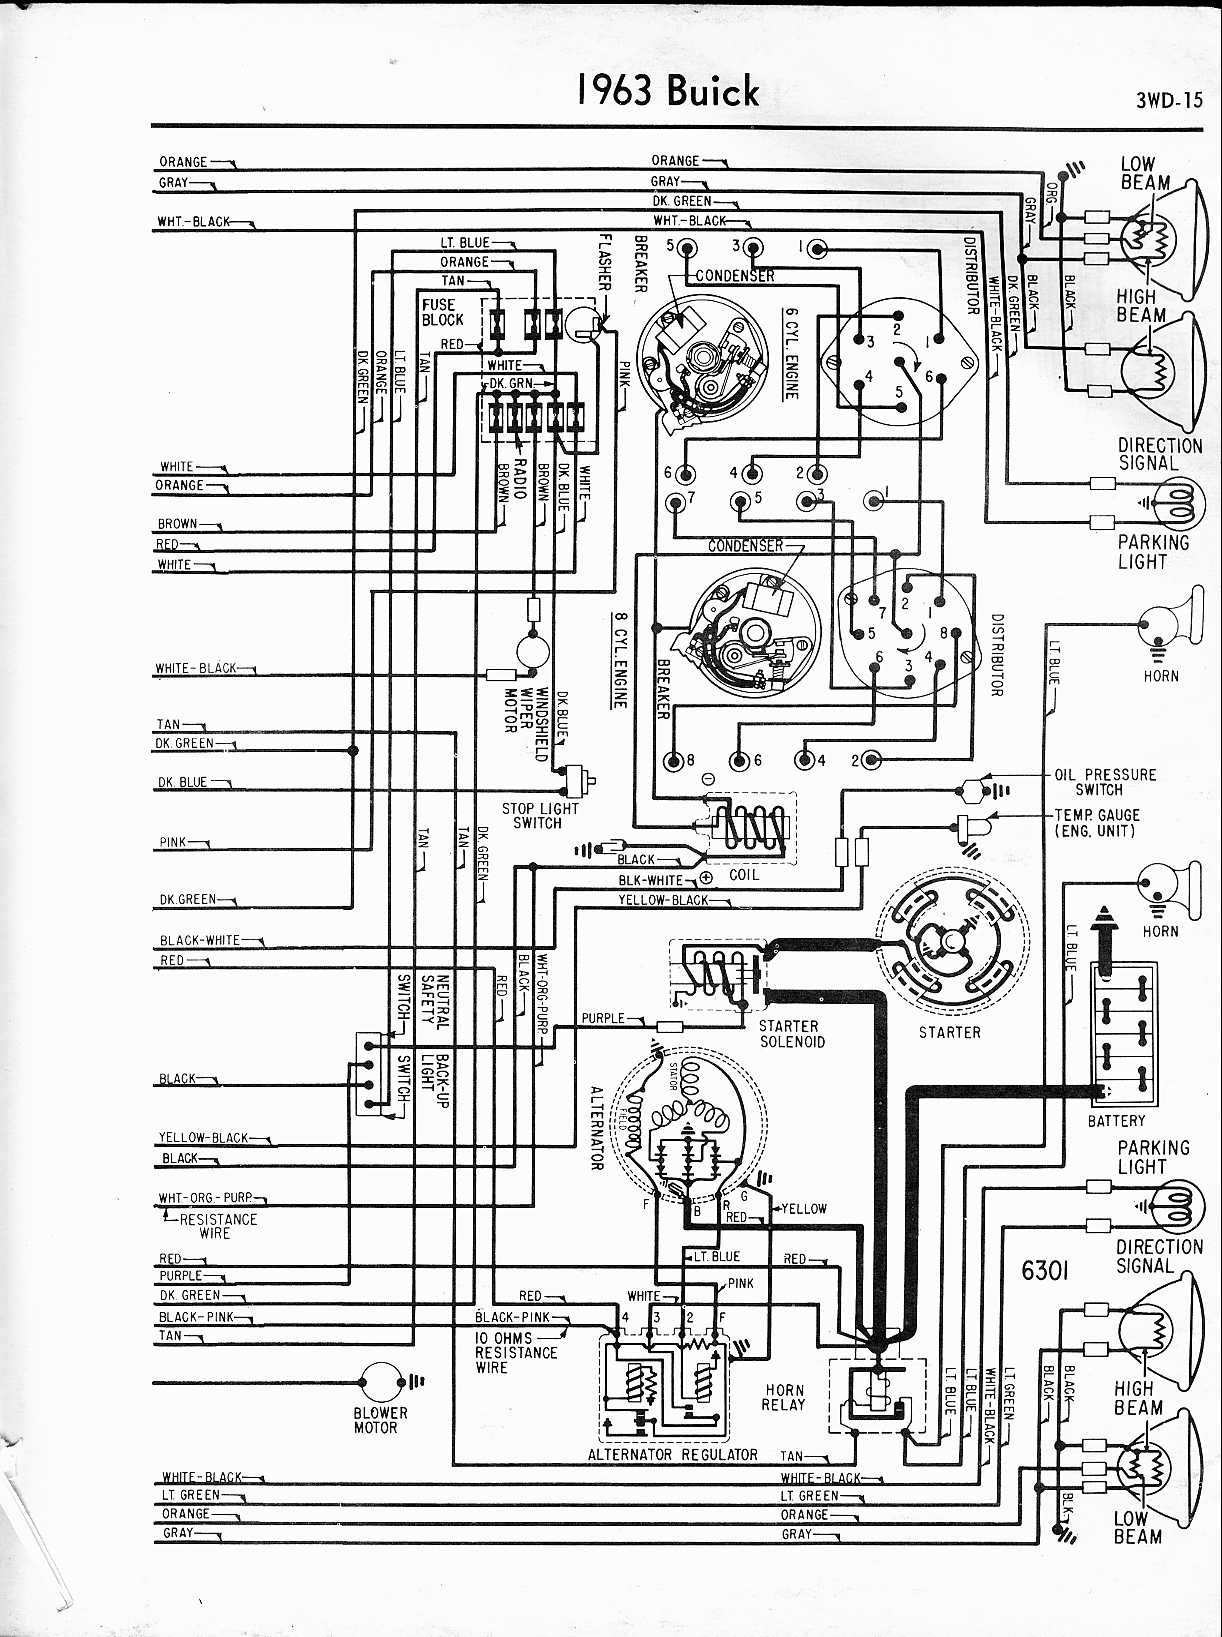 buick wiring diagrams: 1957-1965 65 riviera wiring diagram free picture schematic #8